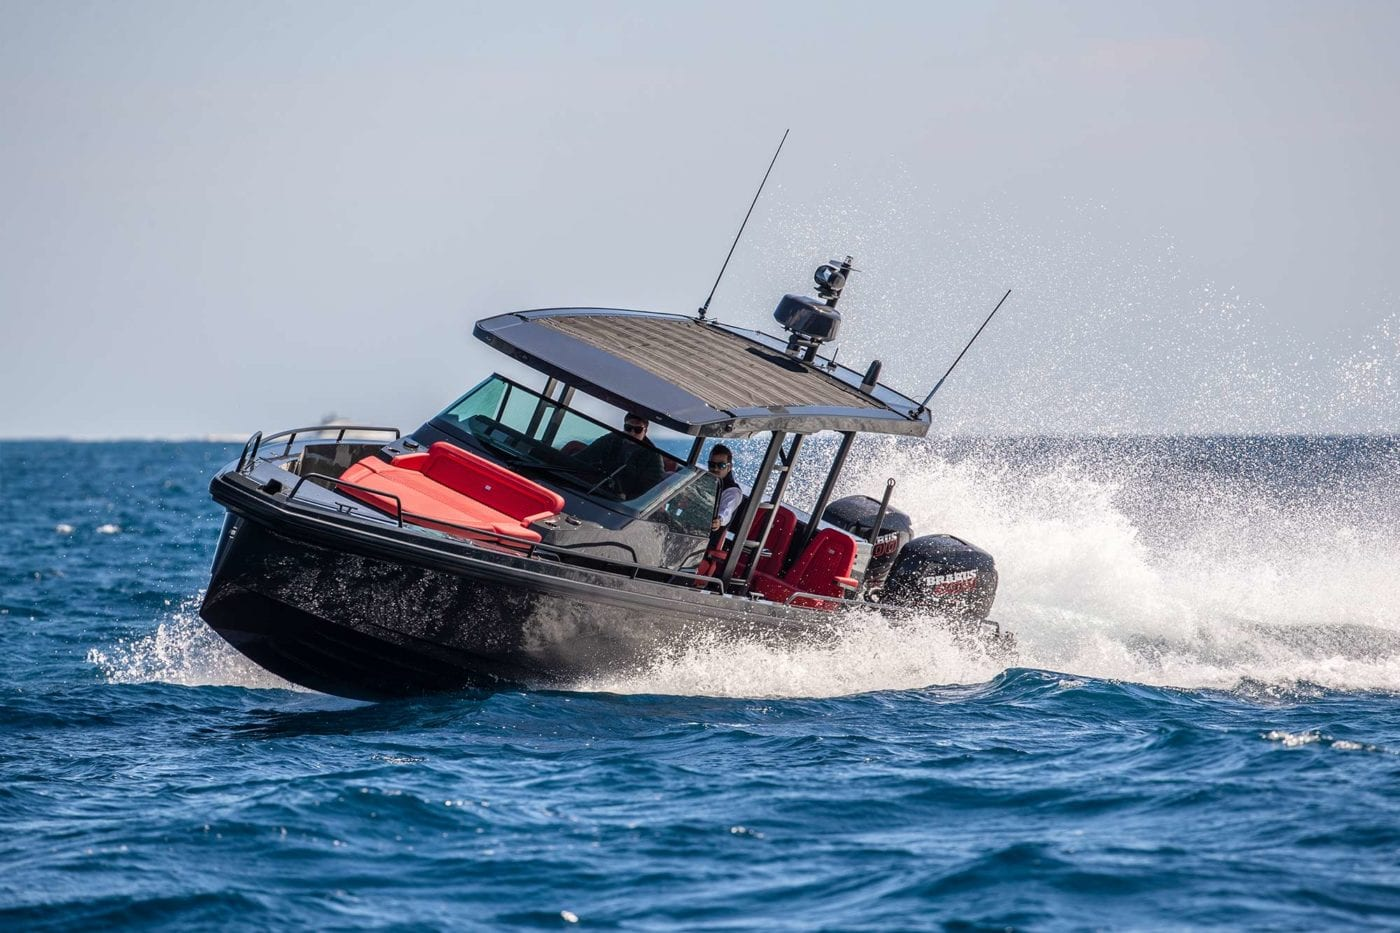 BRABUS Teams Up With Jobe Watersports